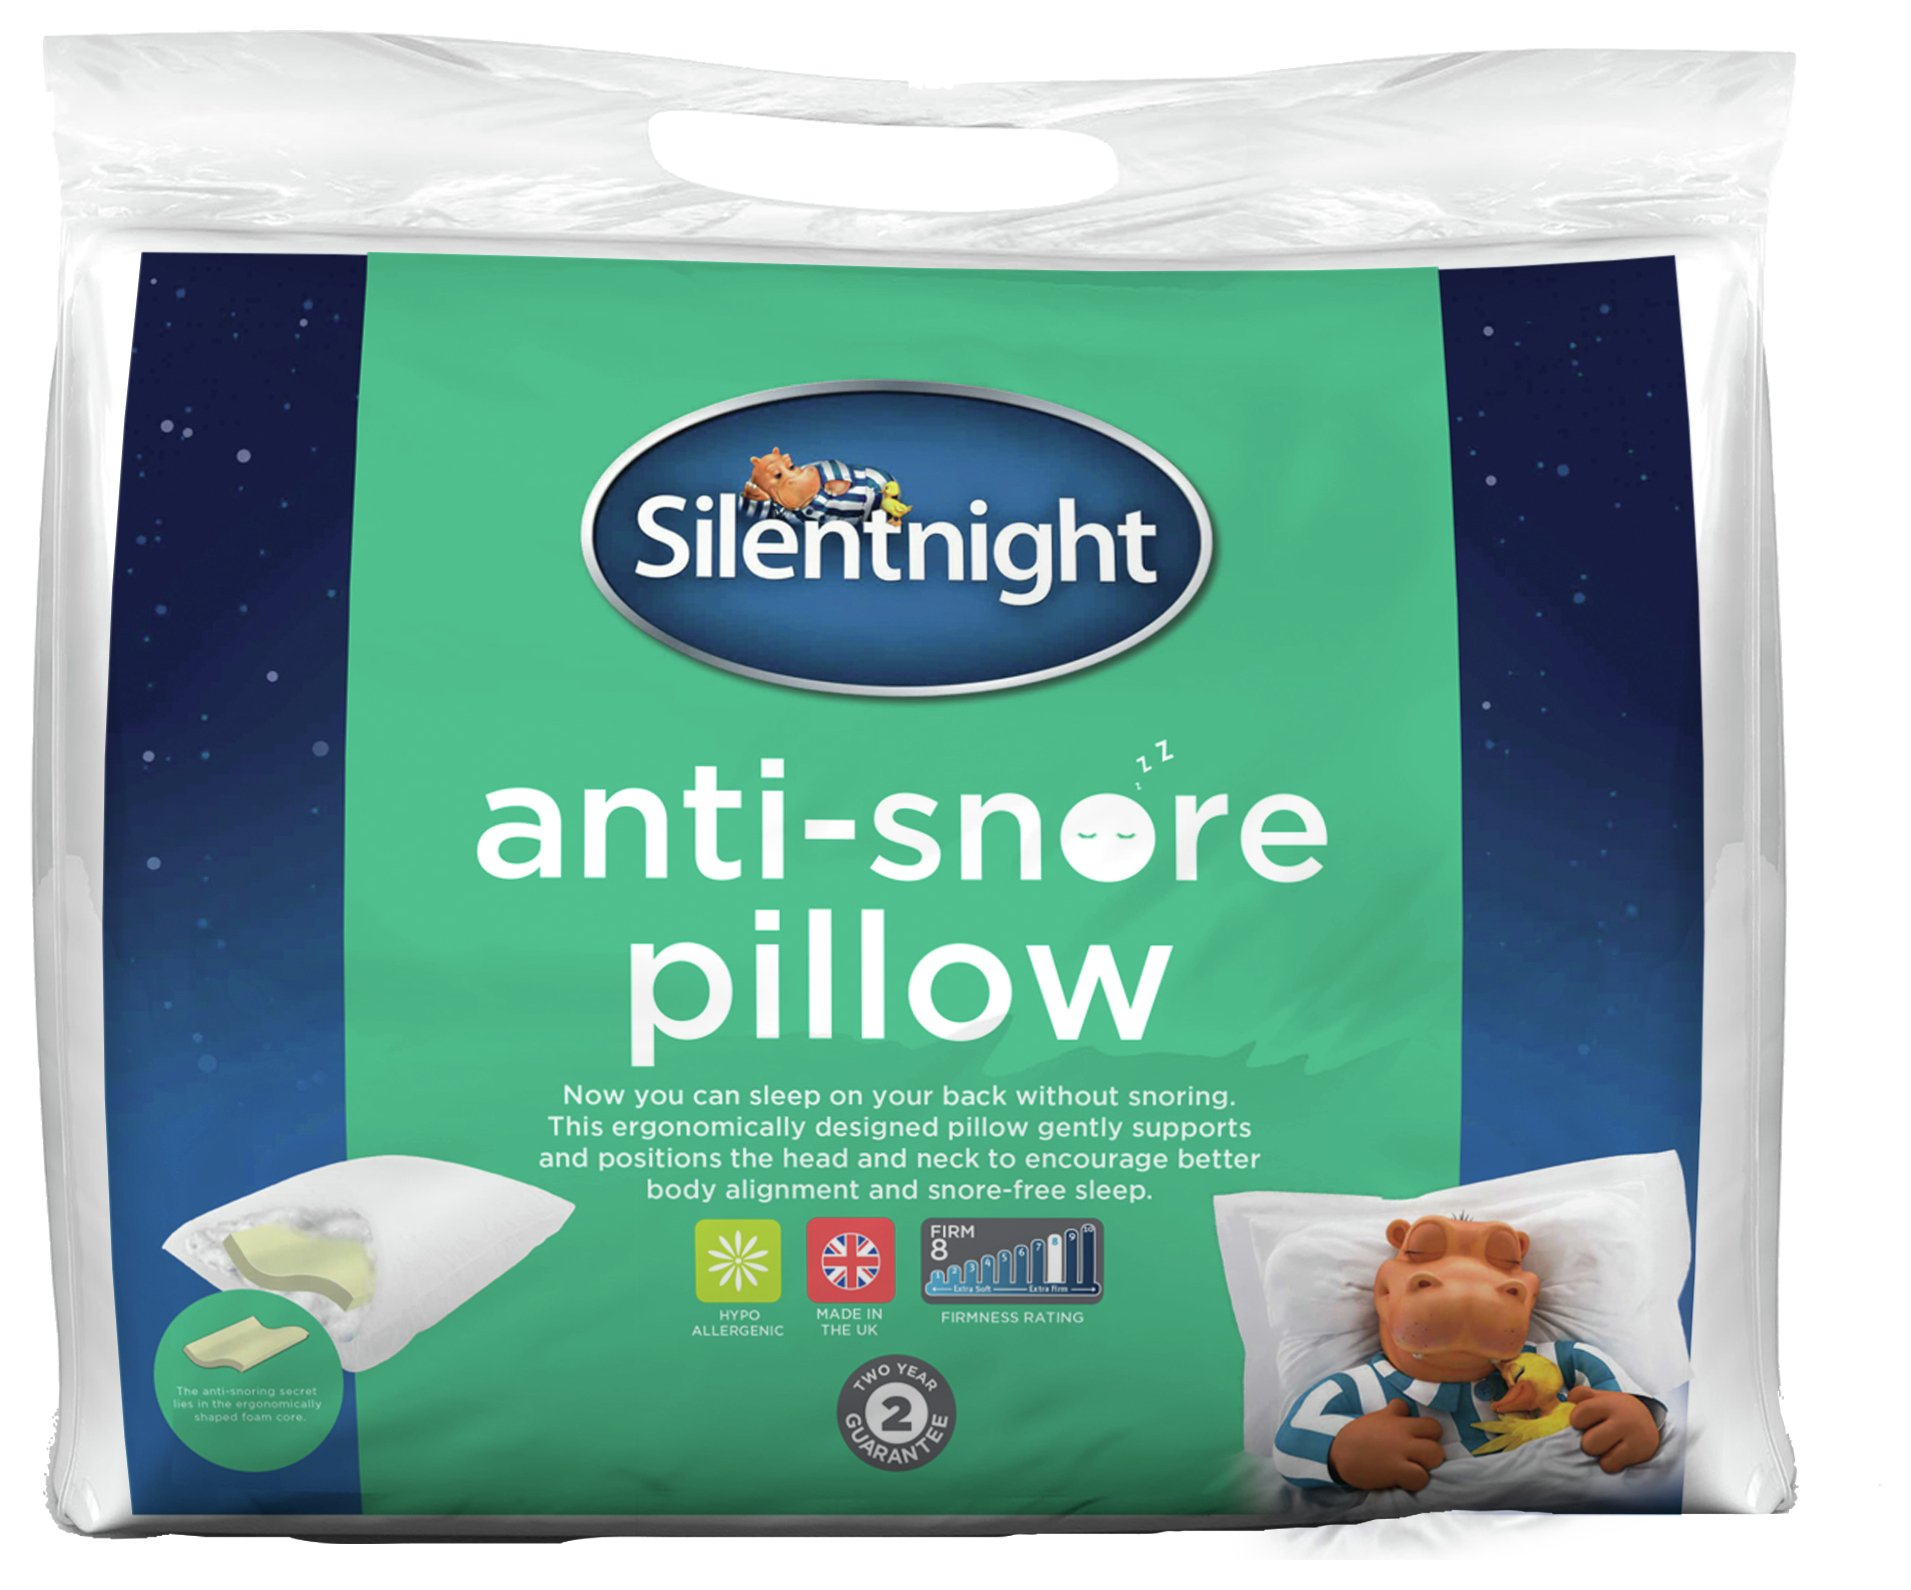 Silentnight Anti snore pillow